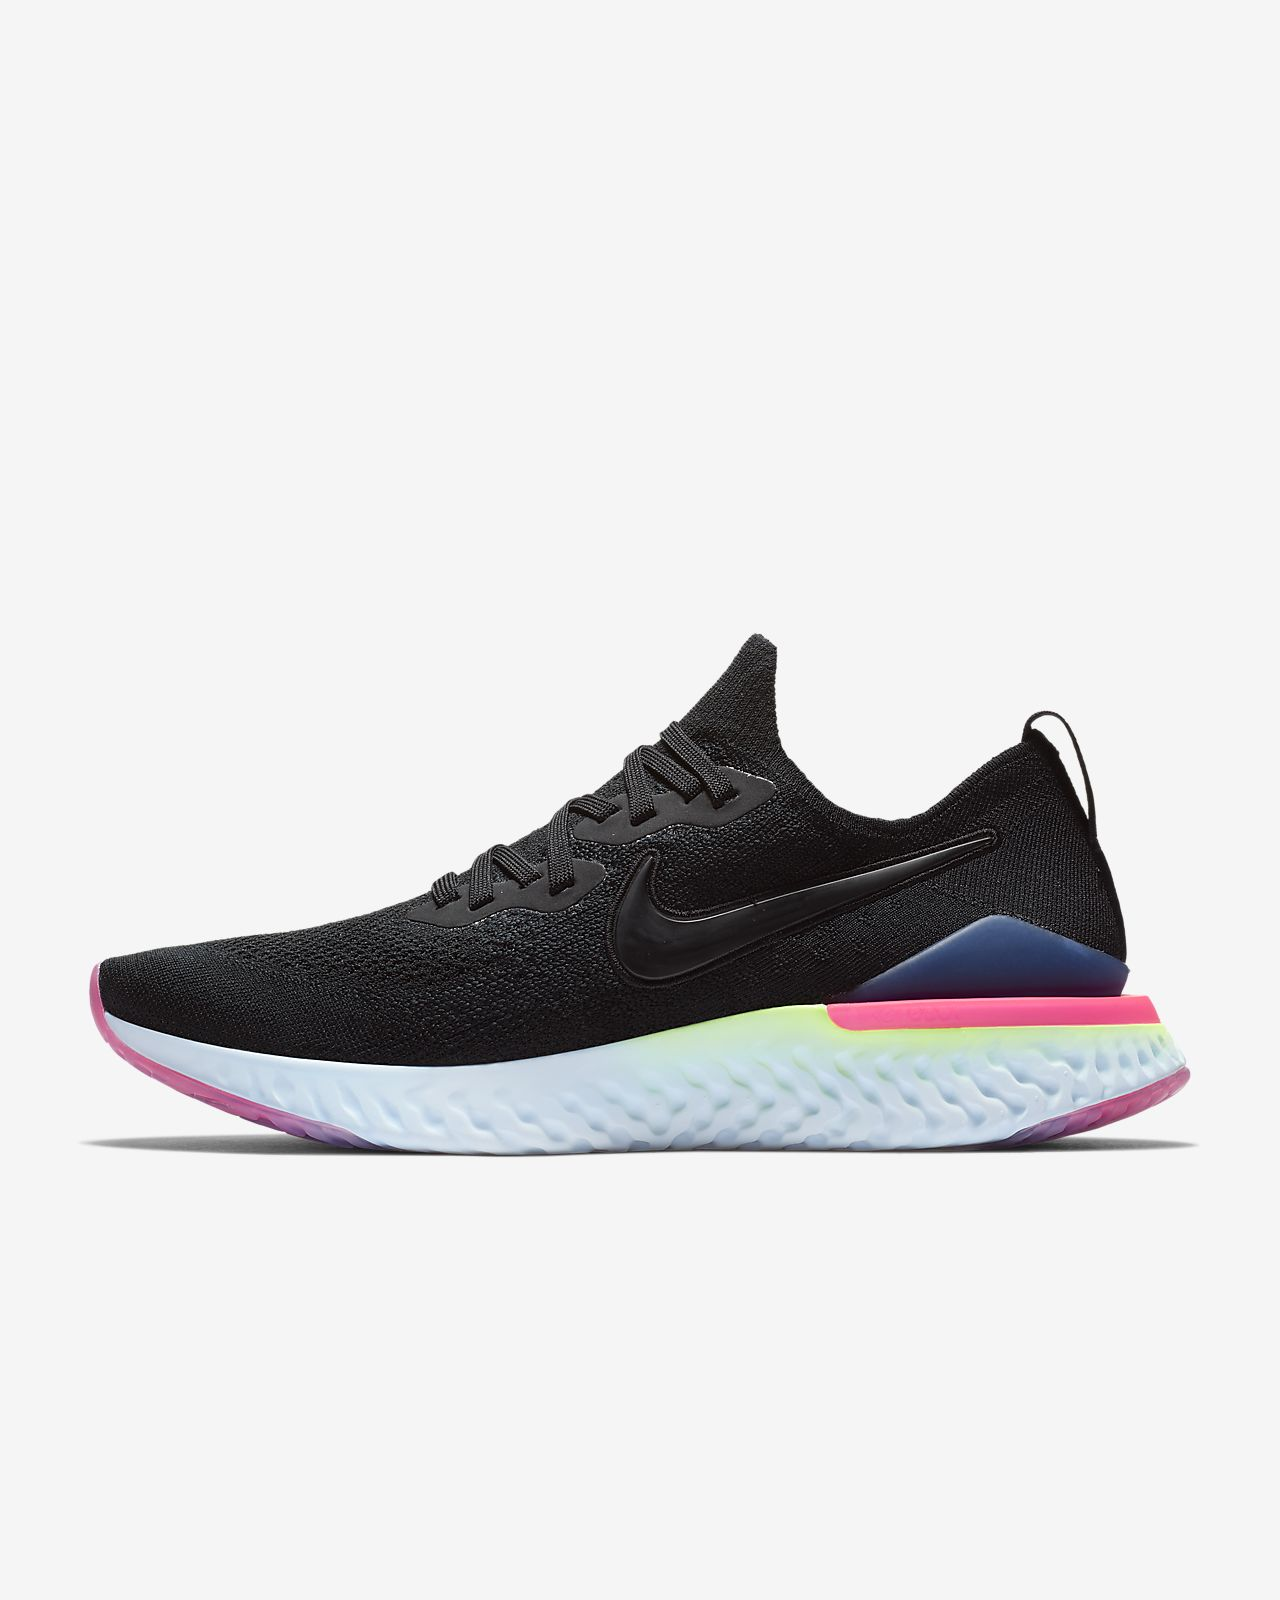 new product ad5af 19479 Men s Running Shoe. Nike Epic React Flyknit 2